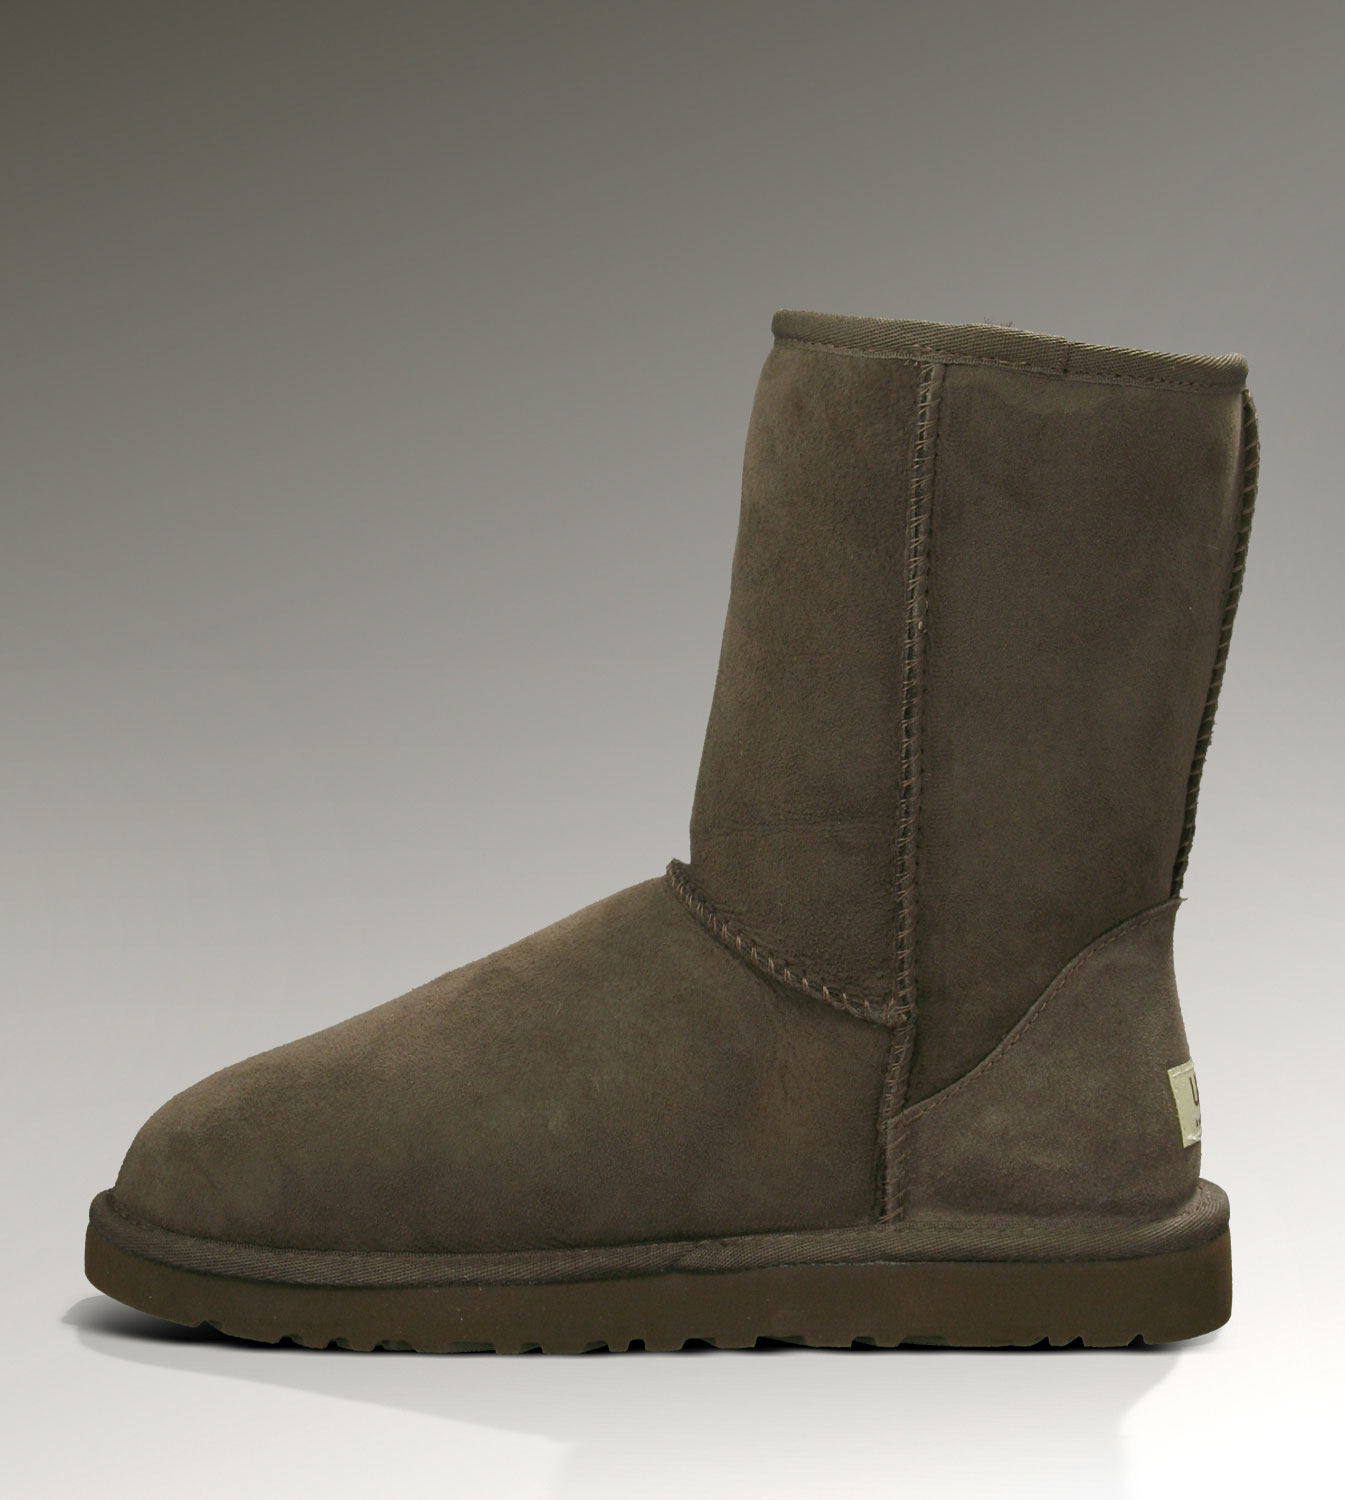 UGG Classic Short 5825 Chocolate Boots